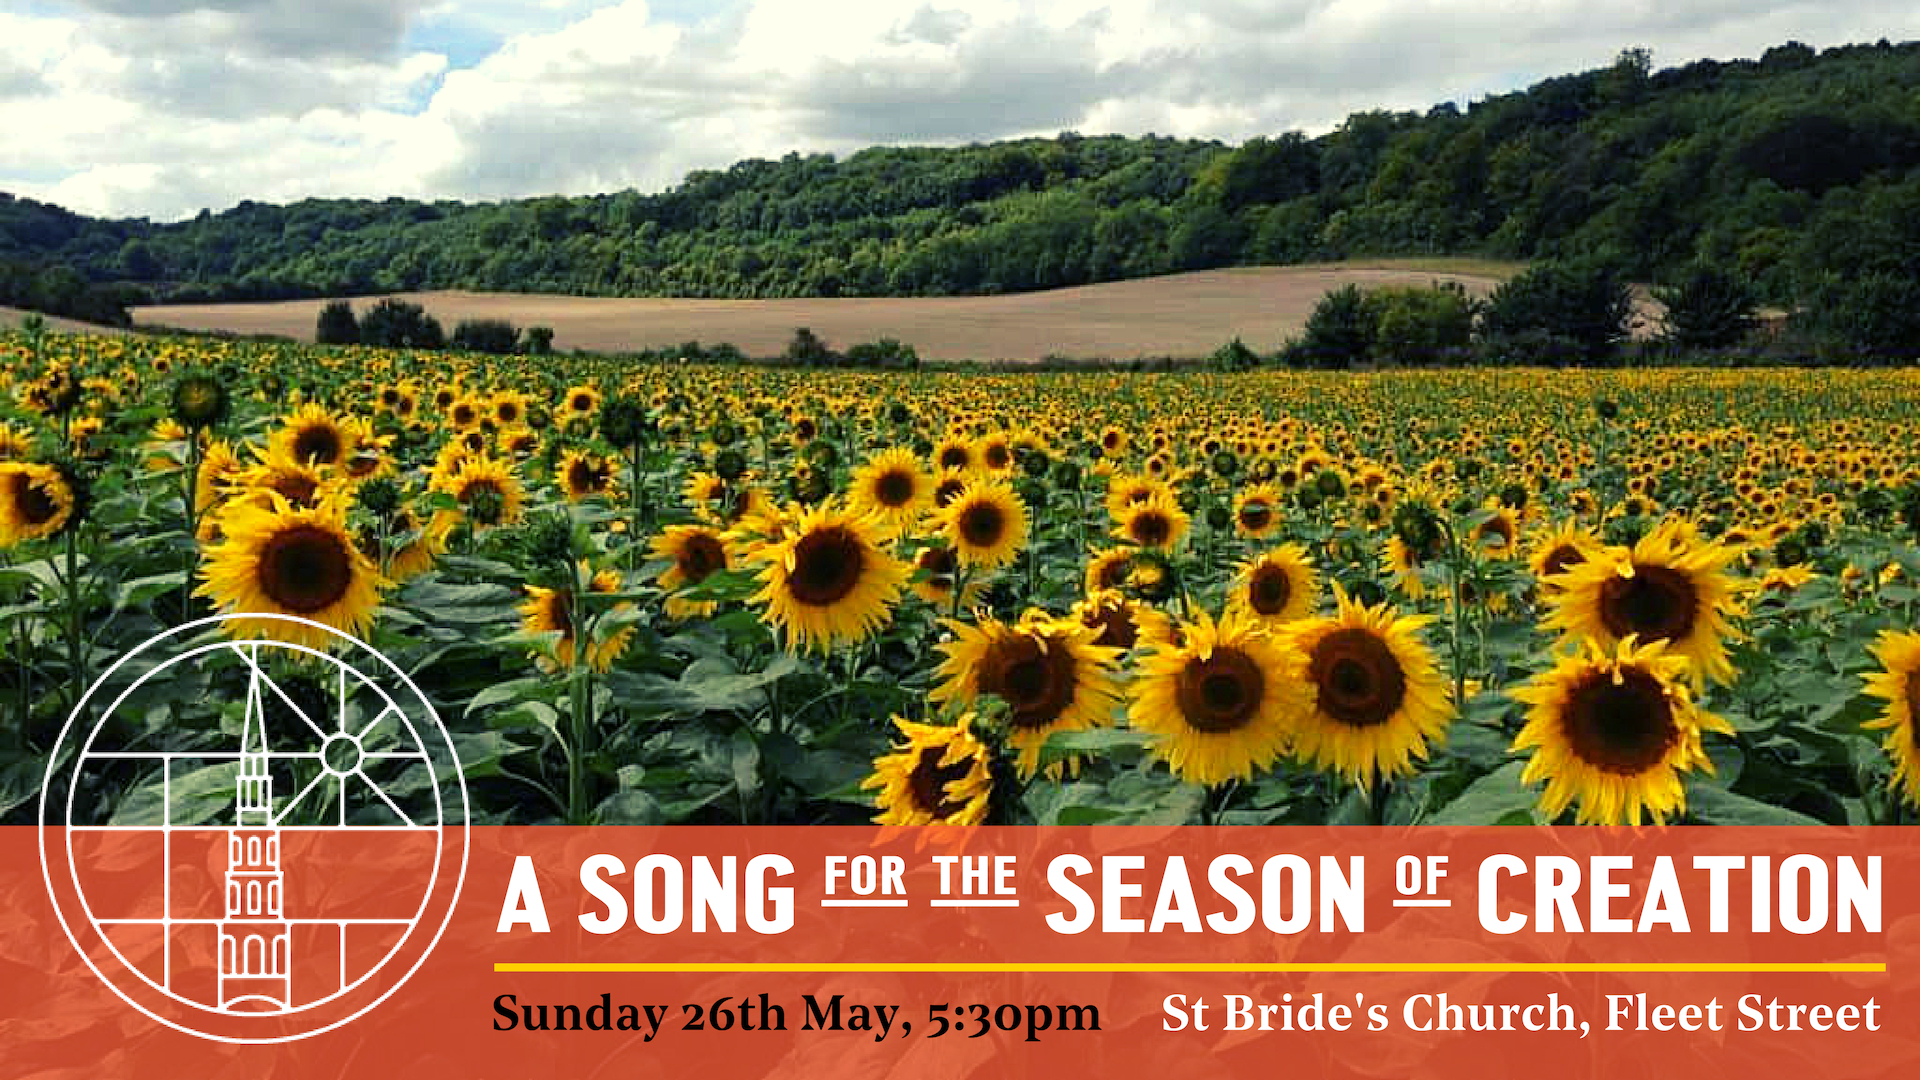 Advert for launch event showing field of sunflowers